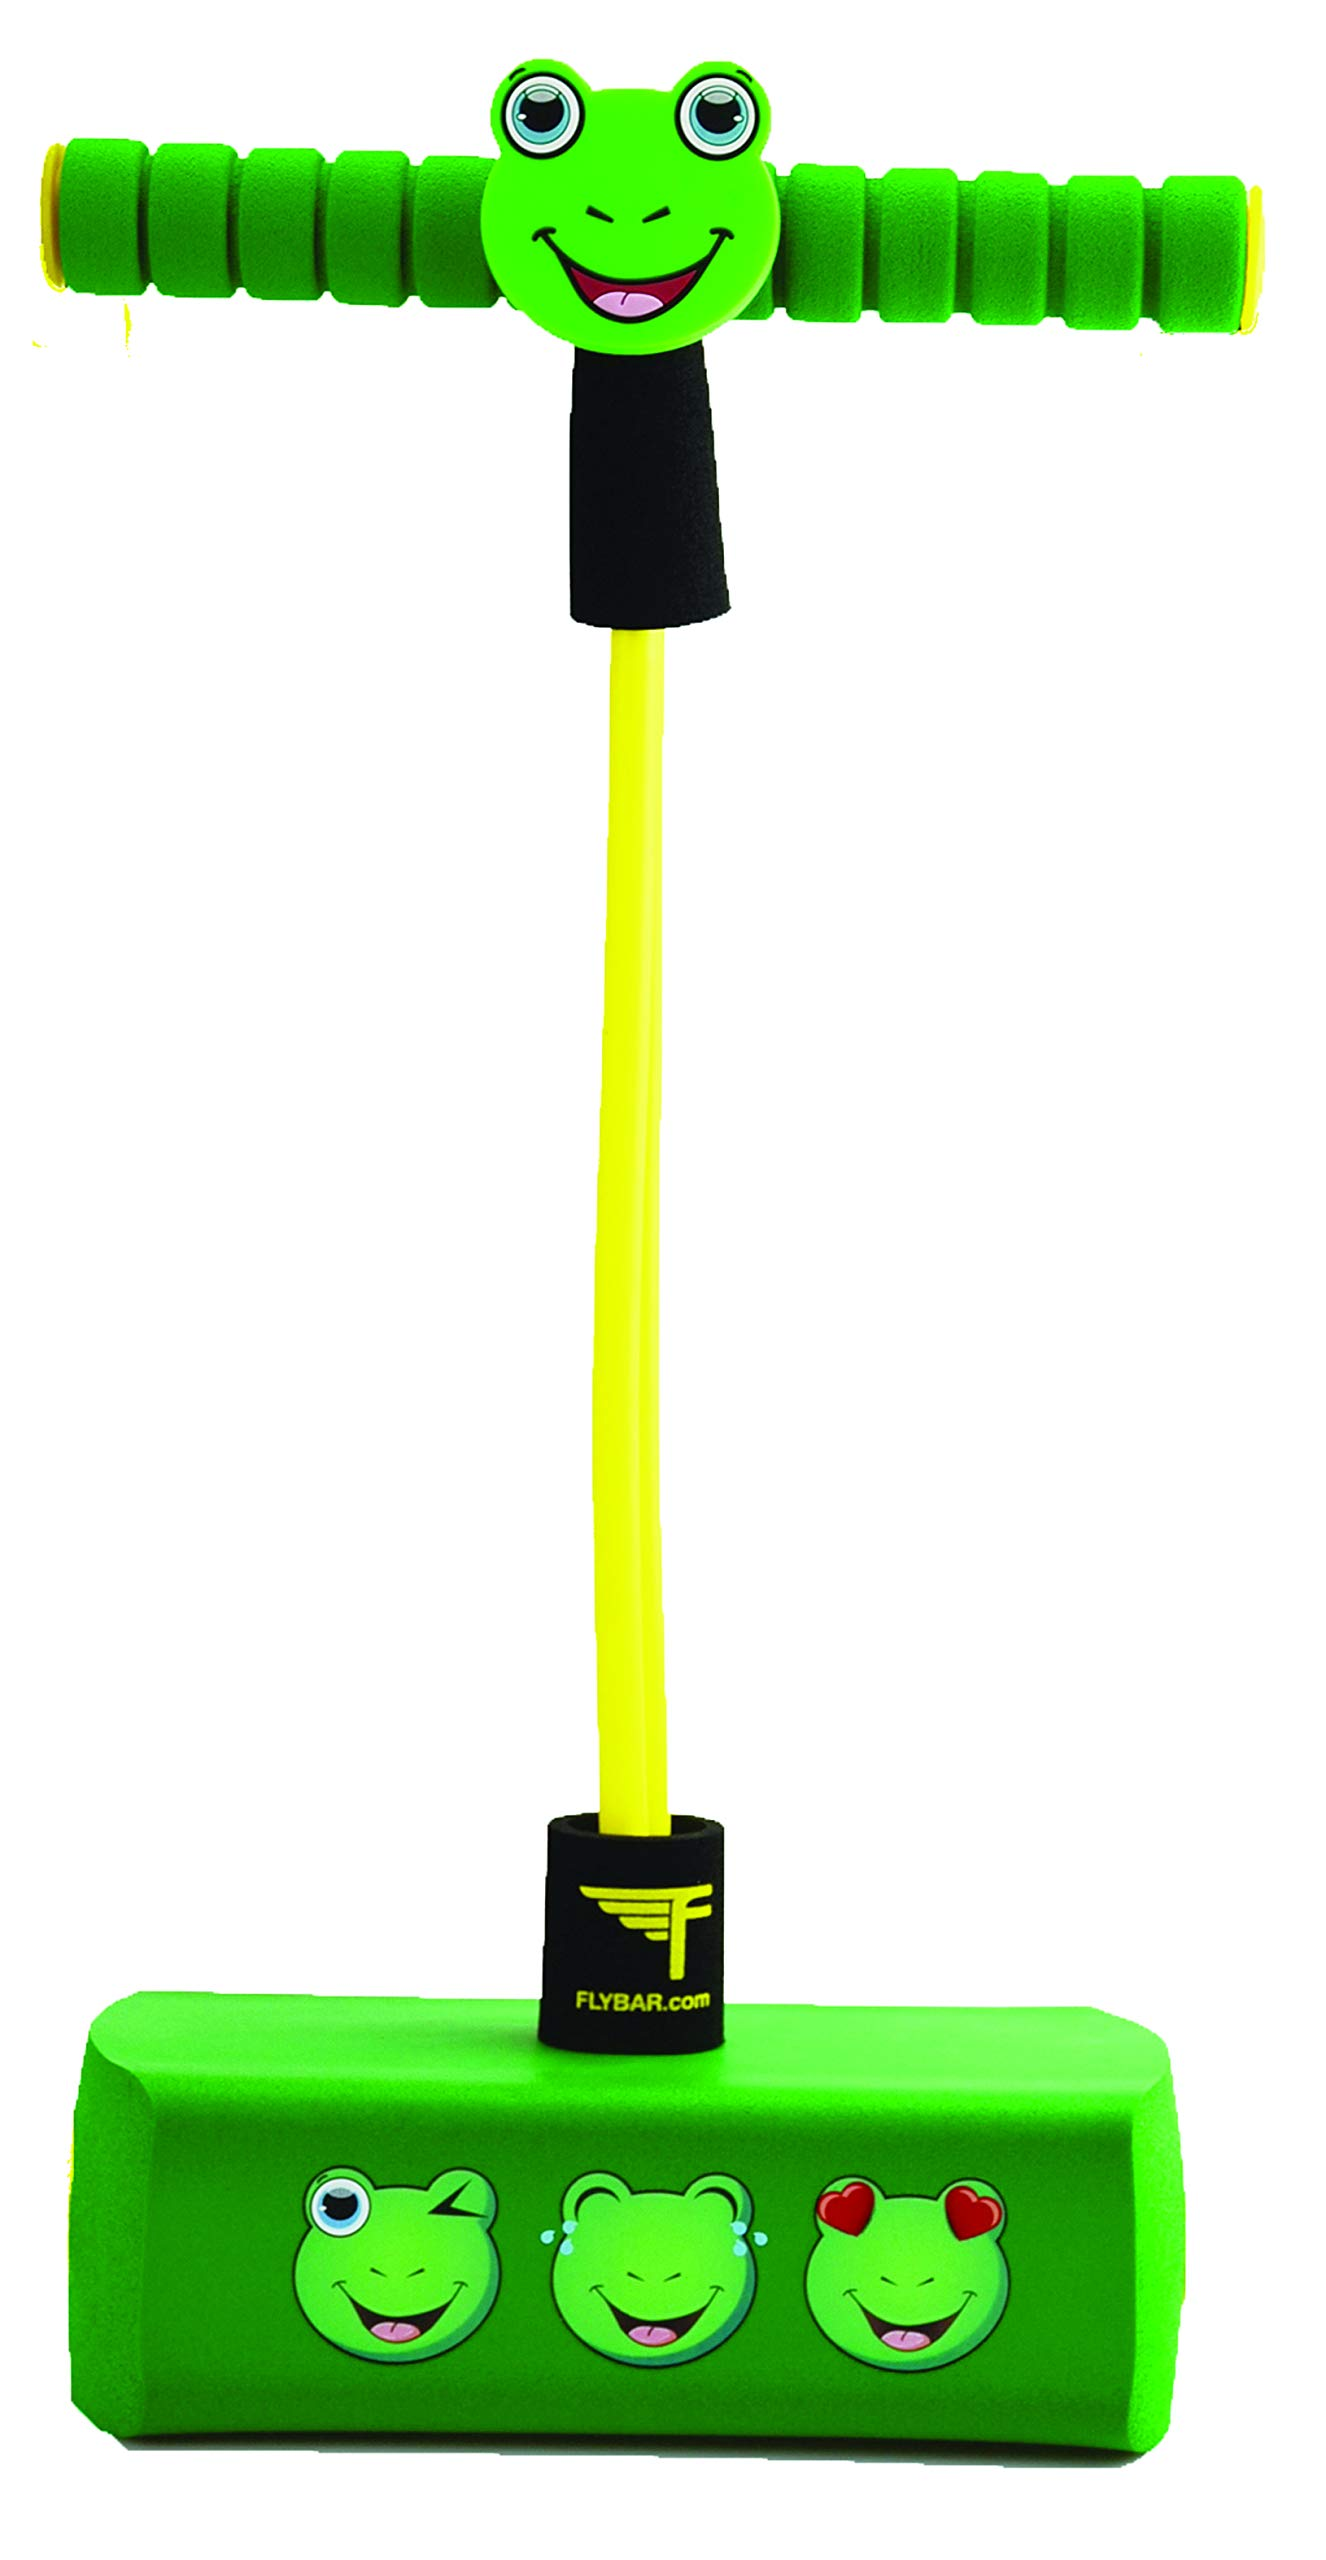 Flybar My First Pogo Pals Jumper for Kids Fun and Safe Pogo Stick for Toddlers, Durable Foam and Bungee Jumper for Ages 3 and up, Supports up to 250lbs (Frog) by Flybar